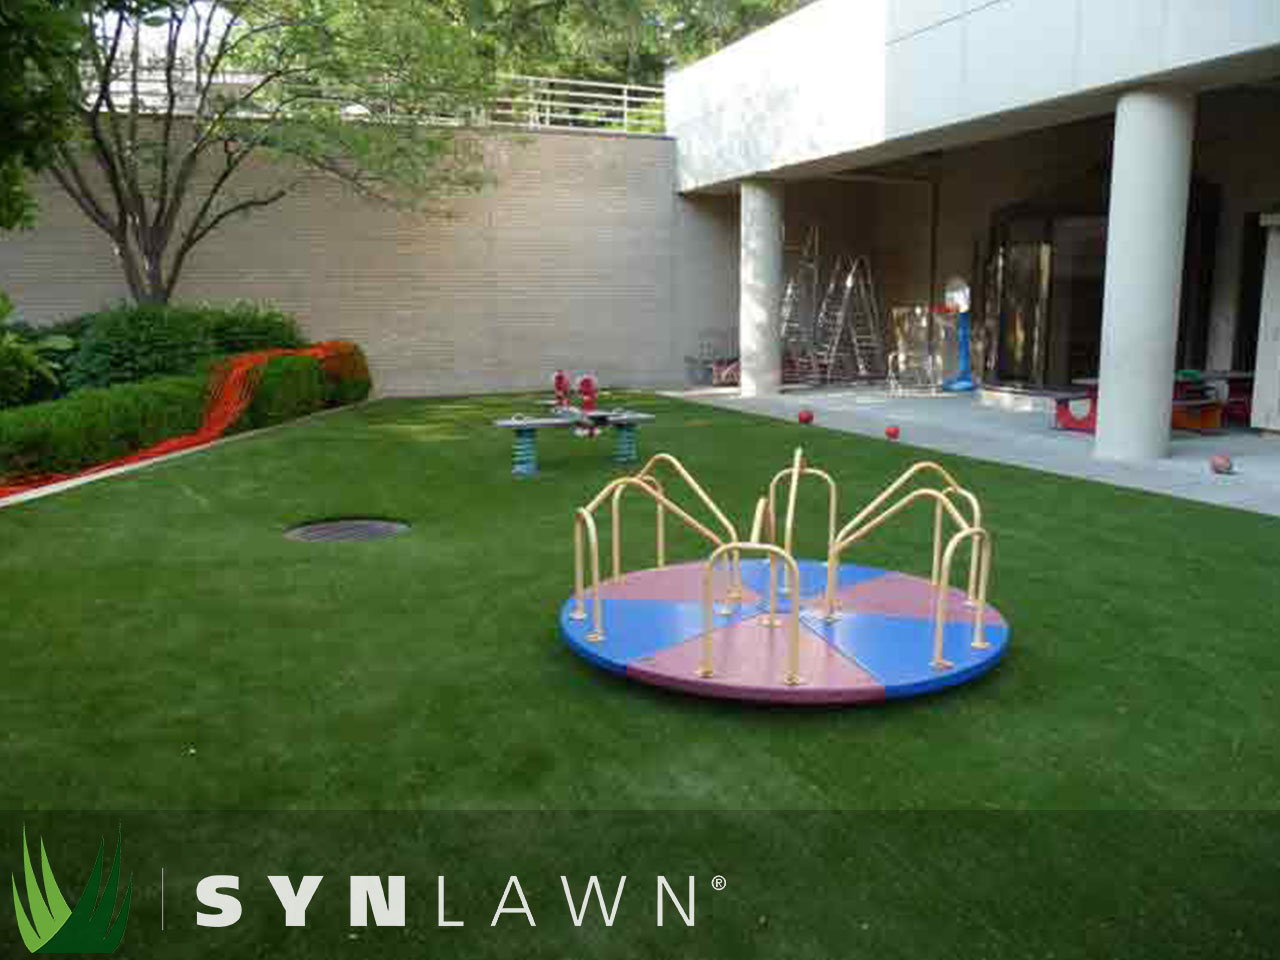 SYNLawn Playground Photo 29